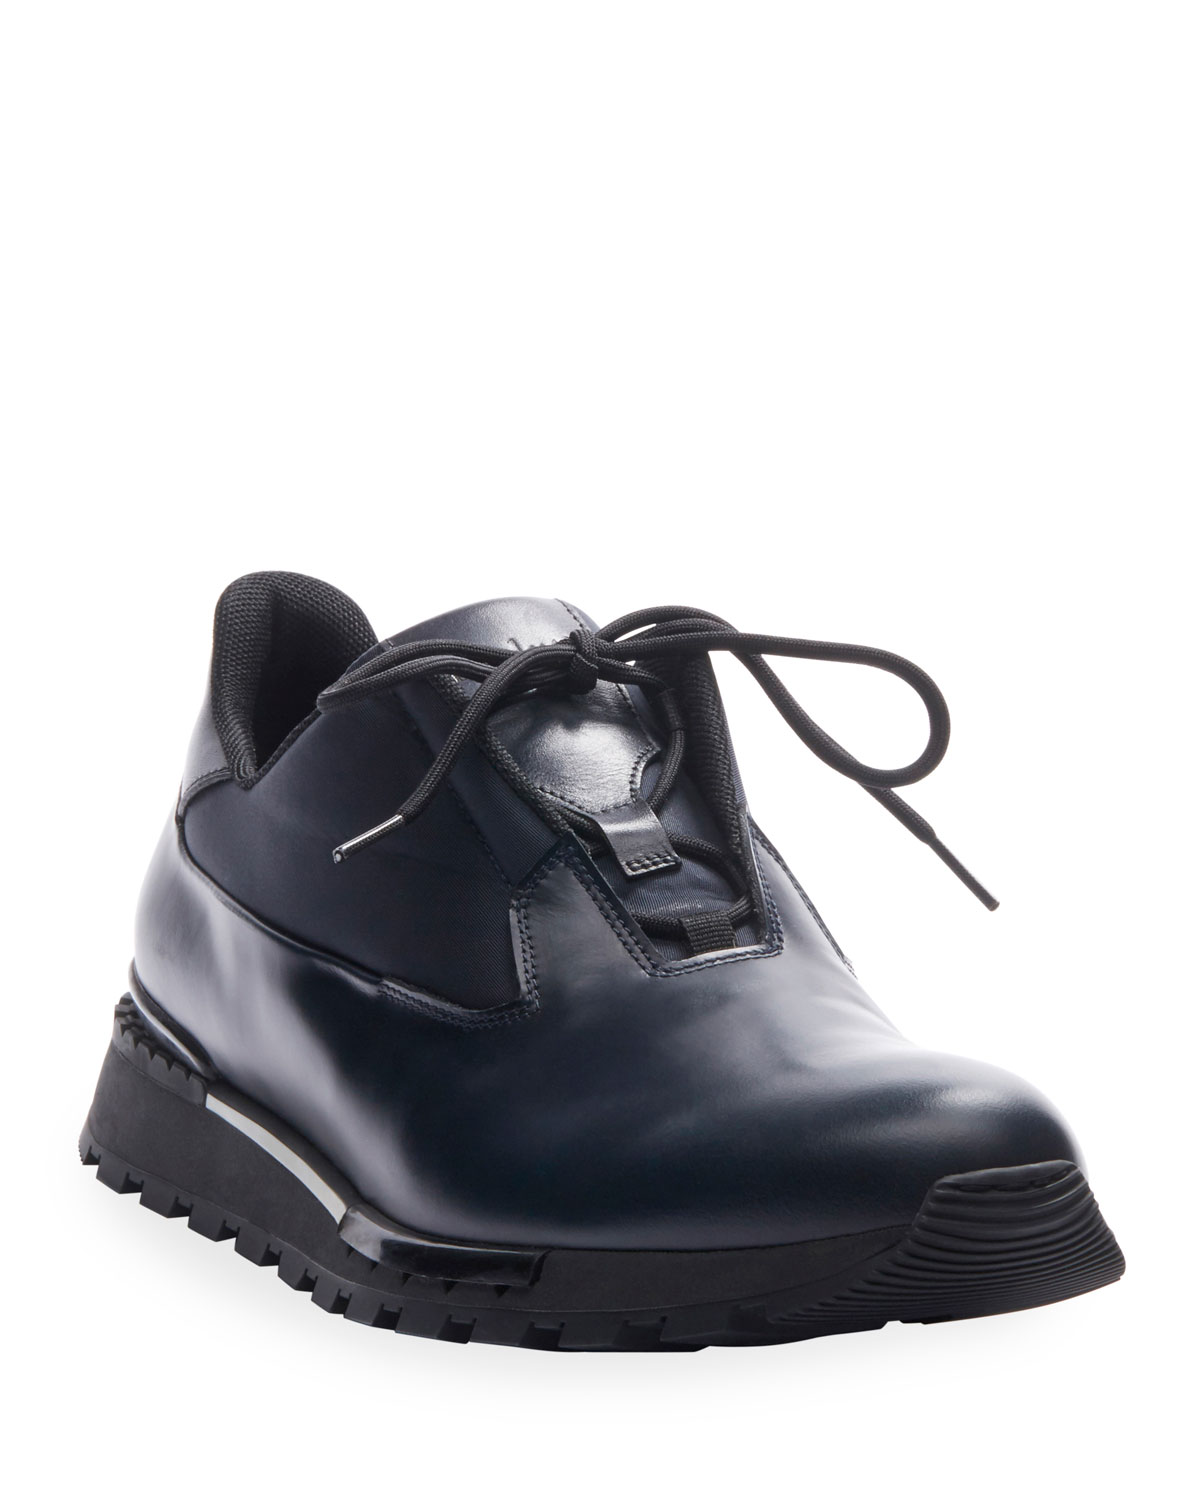 Berluti Sneakers MEN'S GLAZED LEATHER SNEAKERS